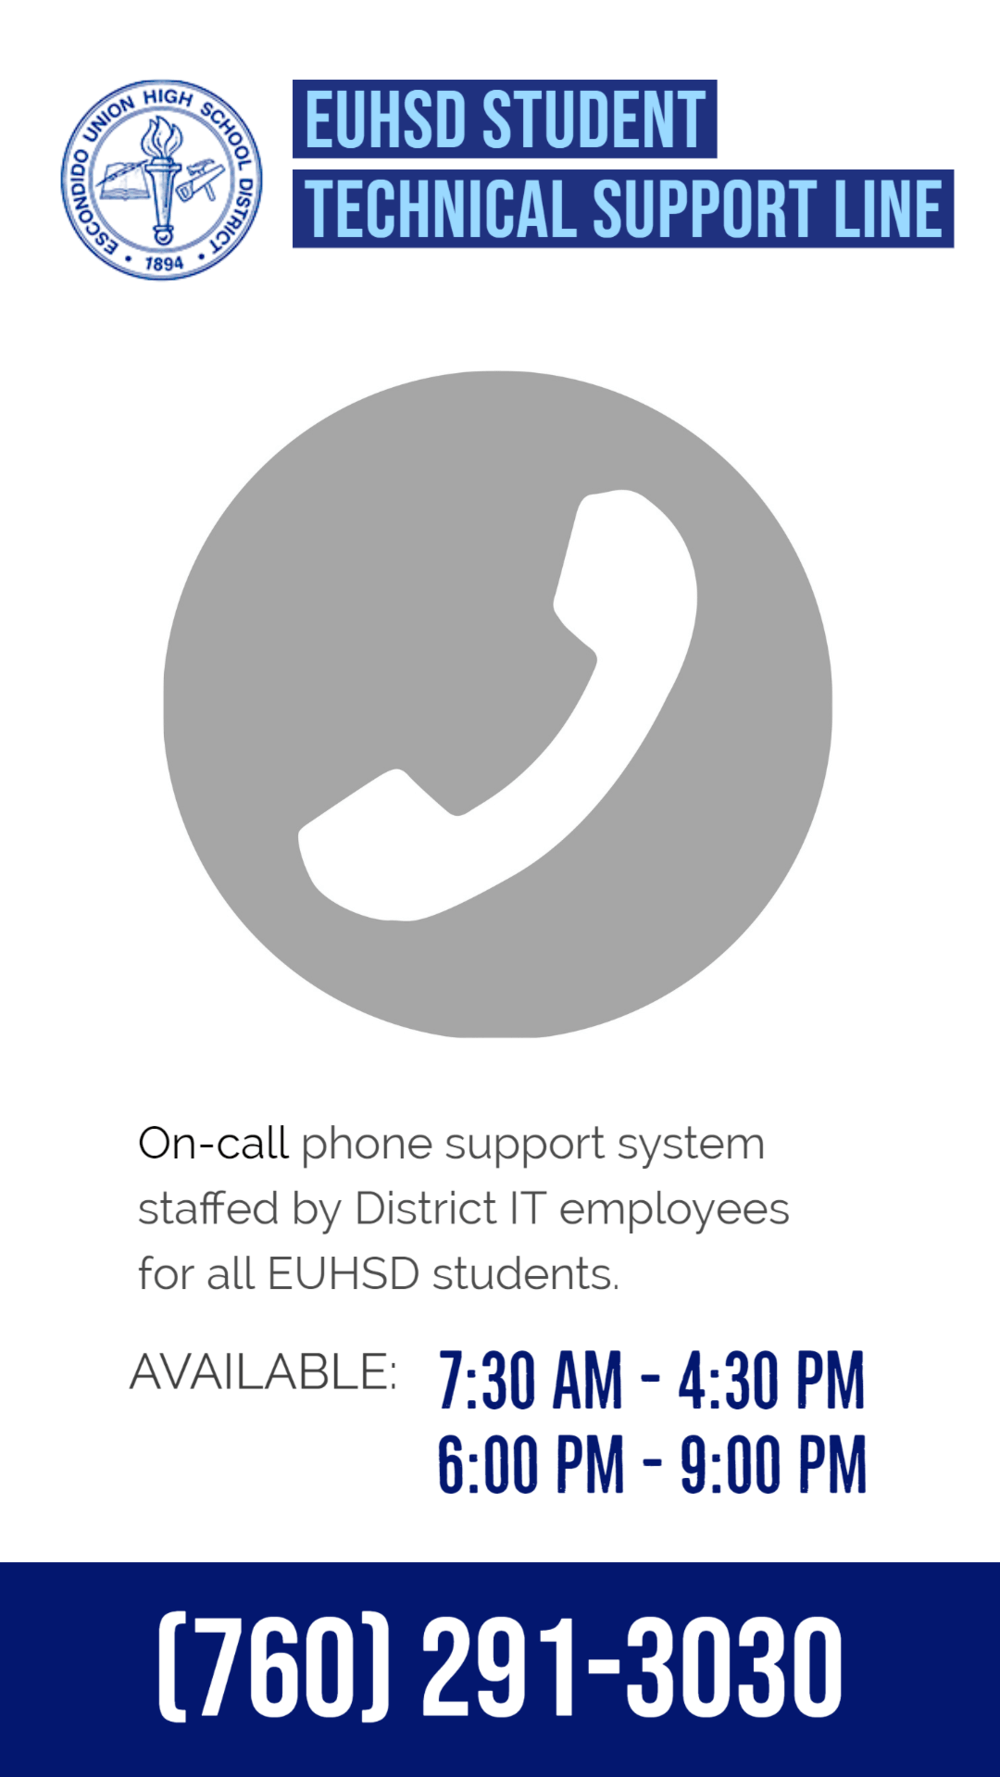 EUHSD Support Line